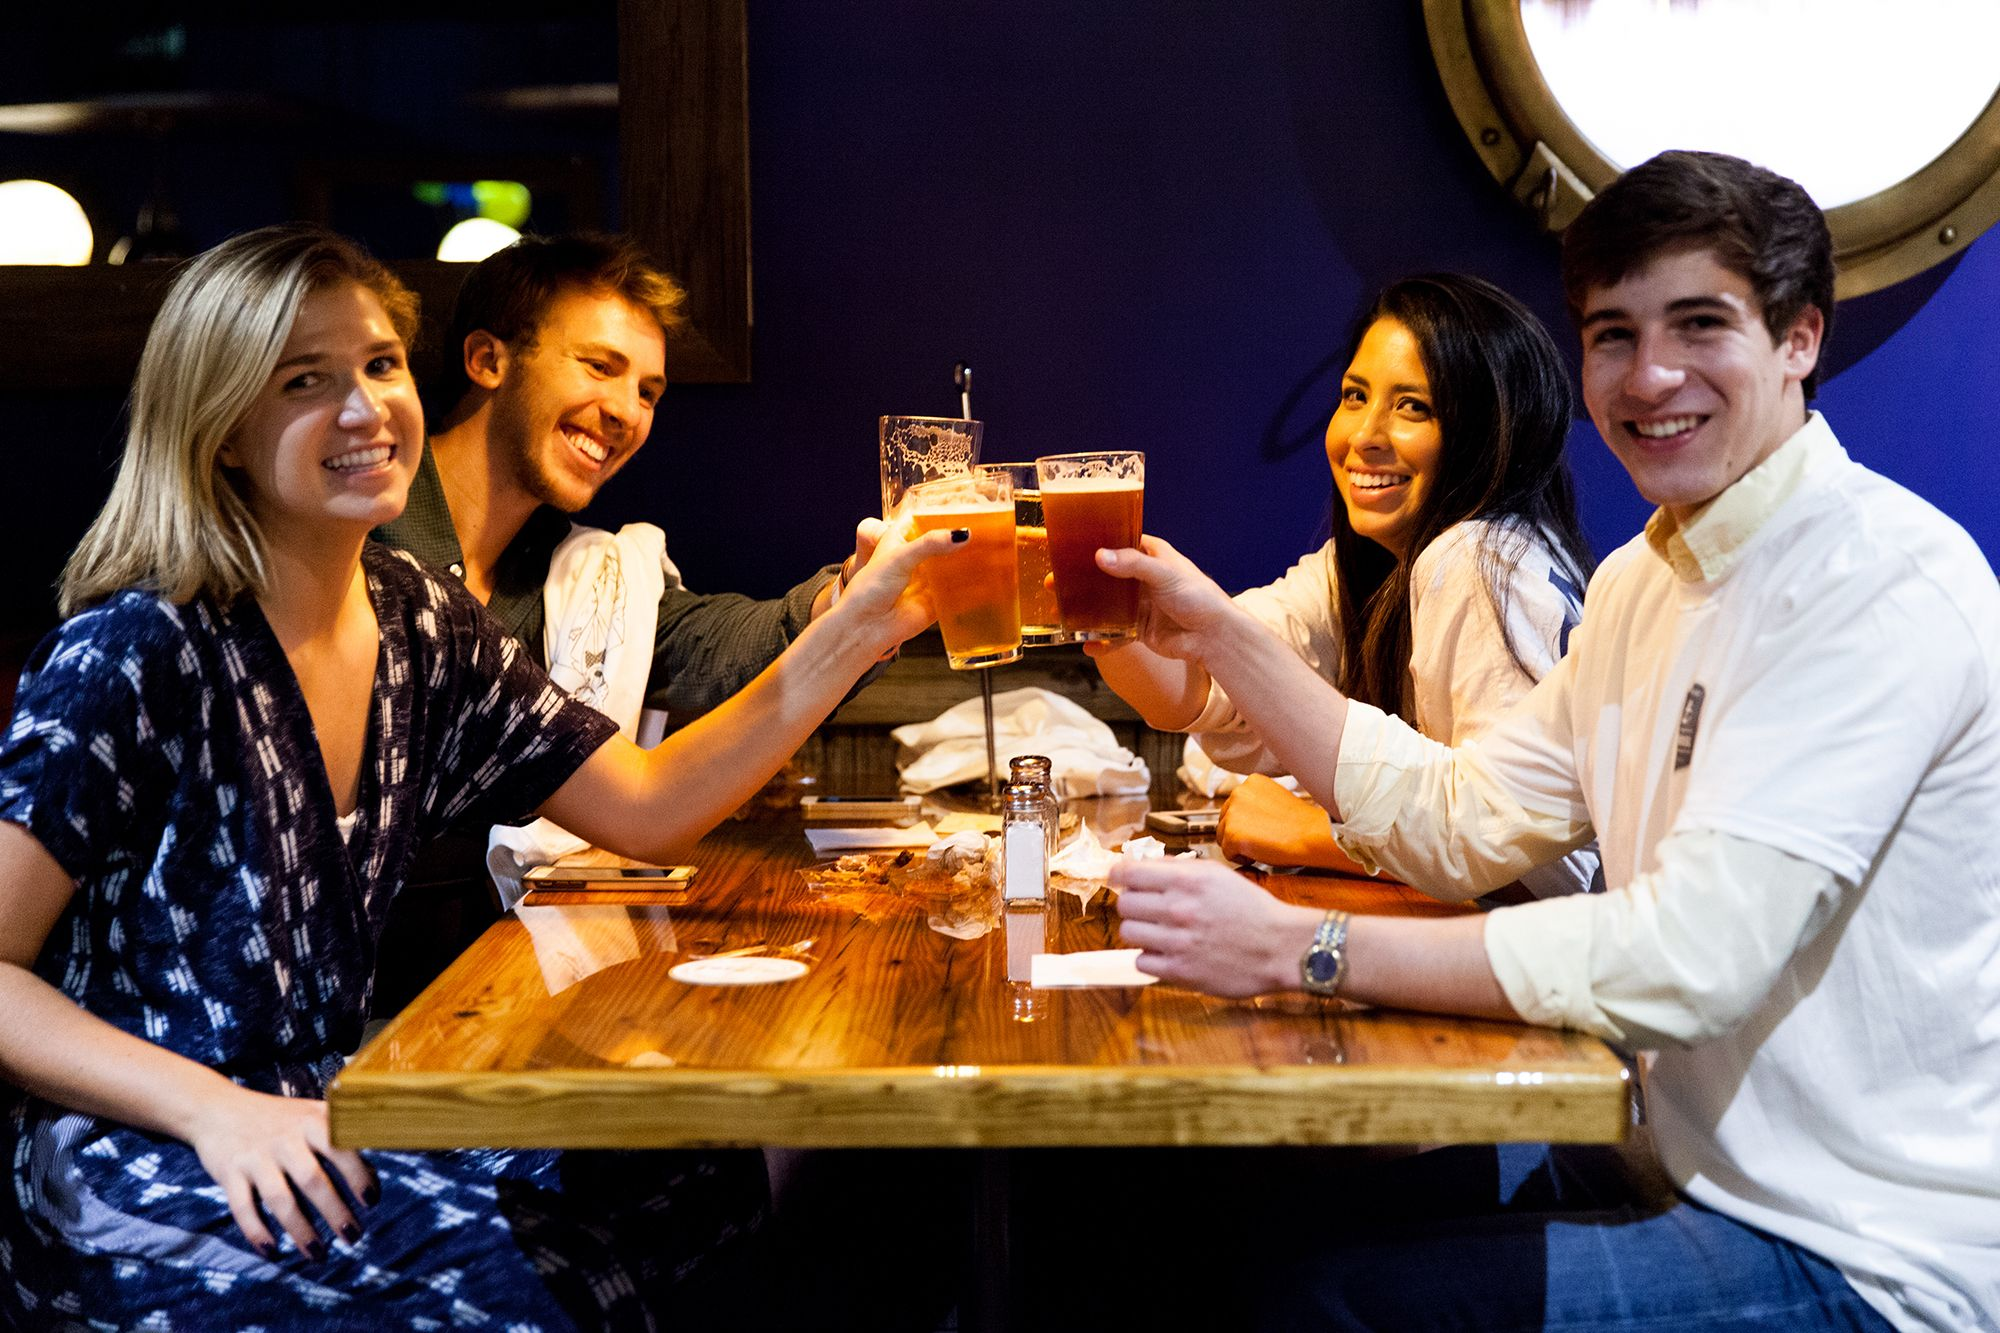 Students enjoy relaxing together at Dave's Boathouse, the pub-style eatery on campus.